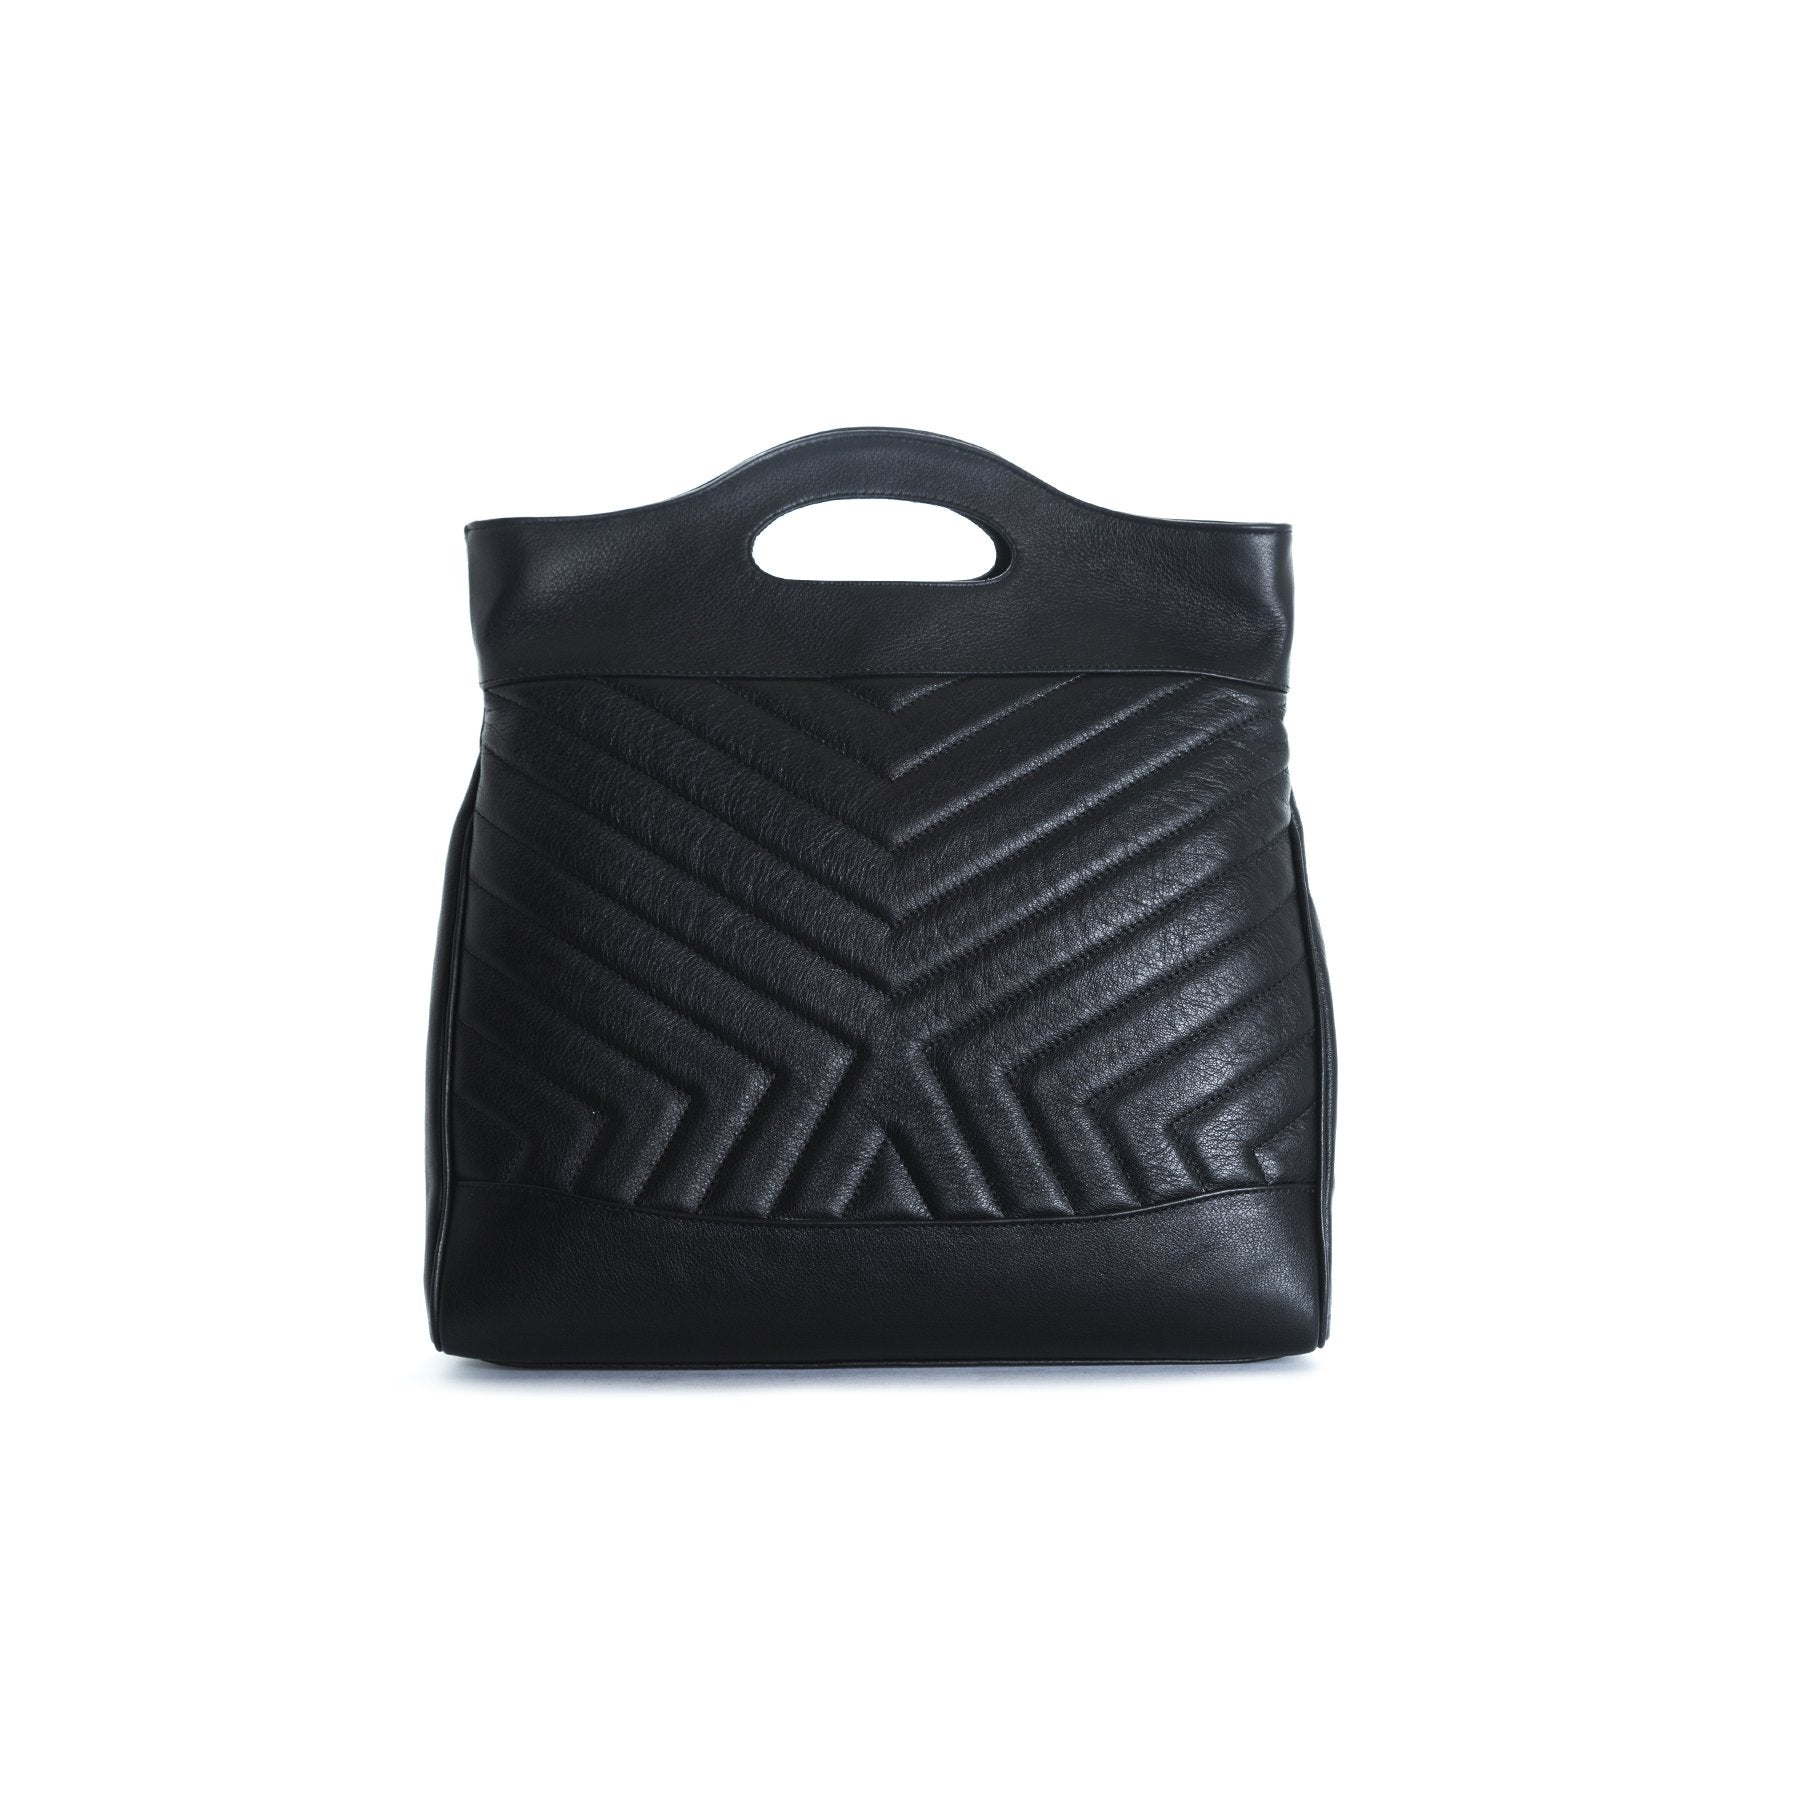 Alexi Black Leather Tote Bags